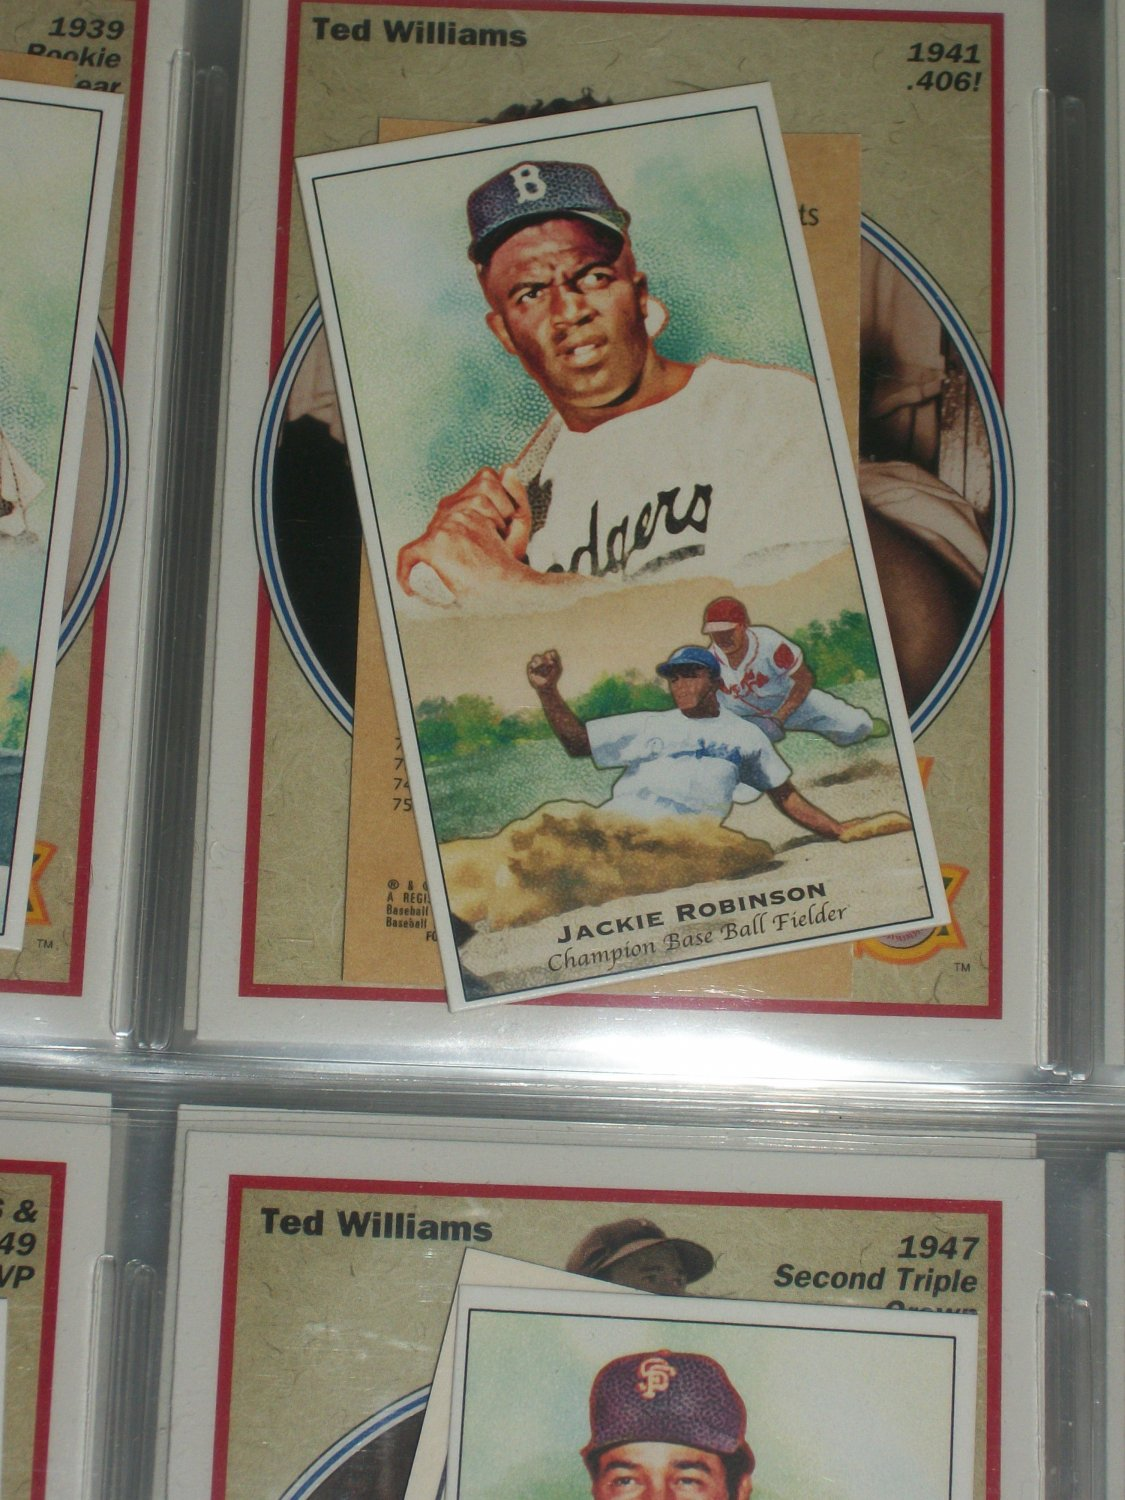 Jackie Robinson 2011 Topps Champions of Games+Sports baseball card